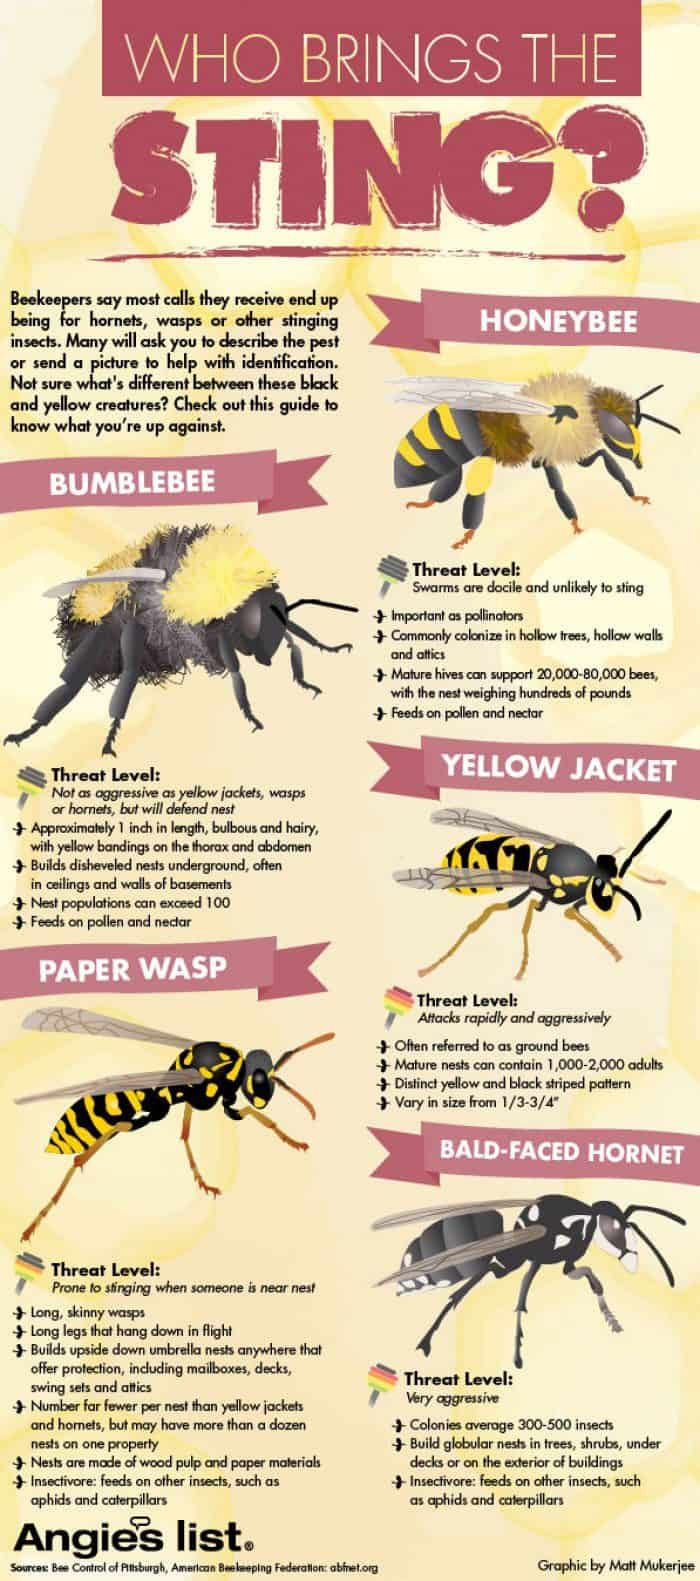 bees sting infographic describing types of bees hornets wasps